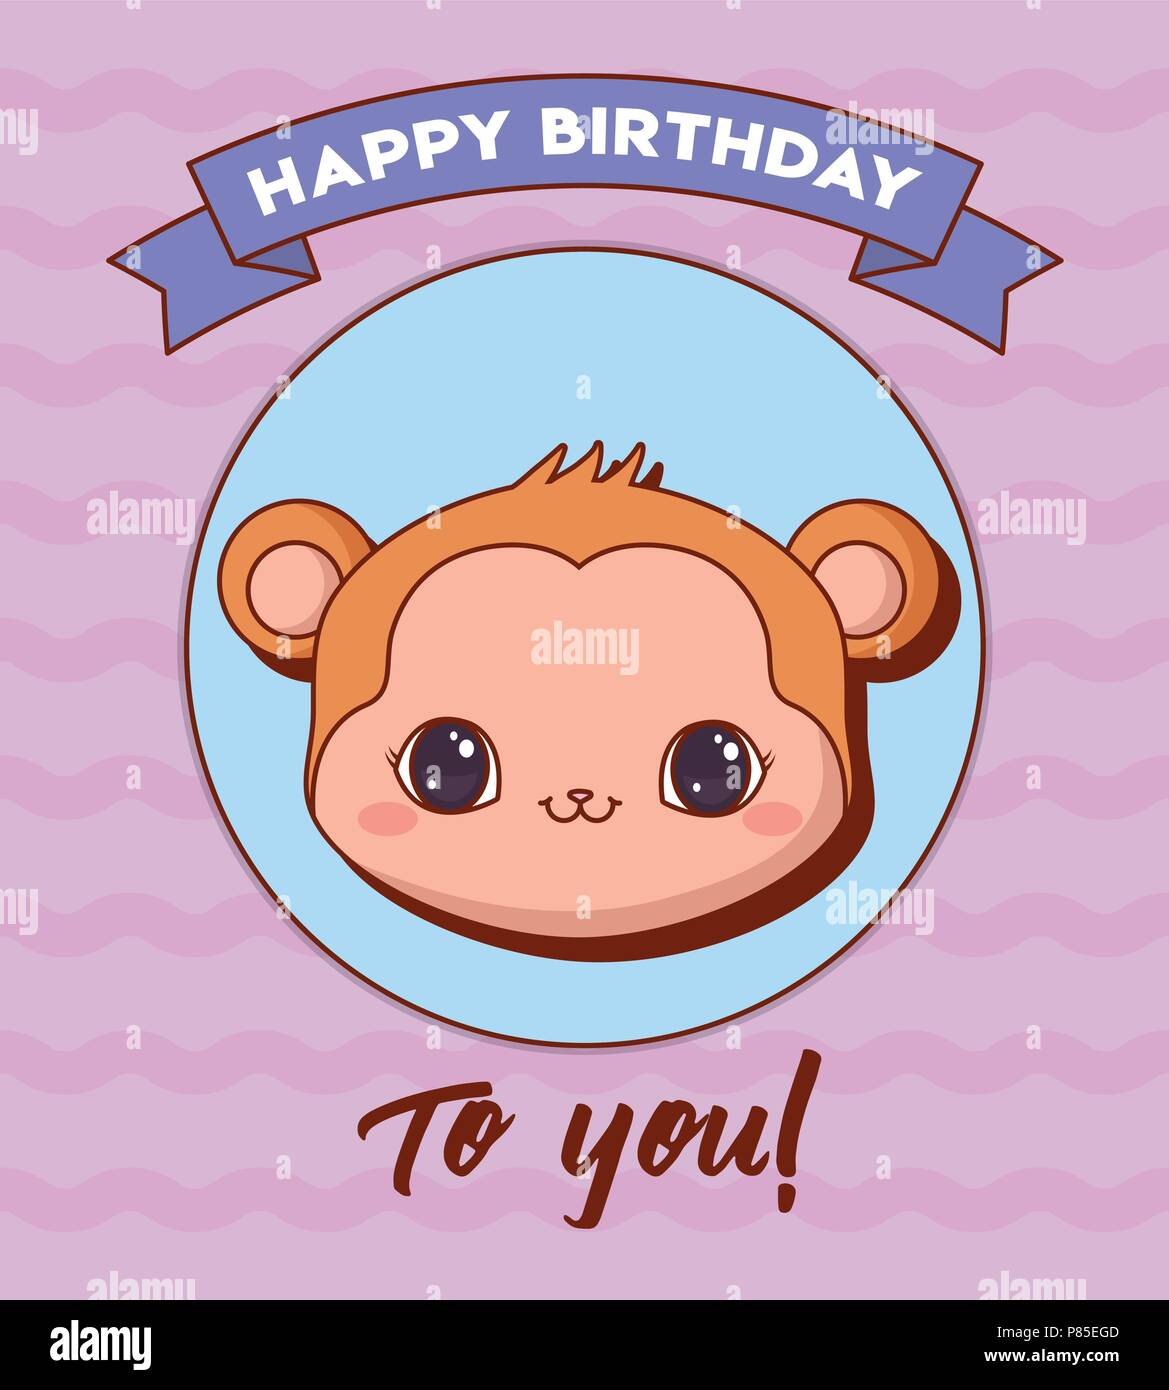 hight resolution of happy birthday design with cute monkey icon and decorative ribbon over purple background colorful design